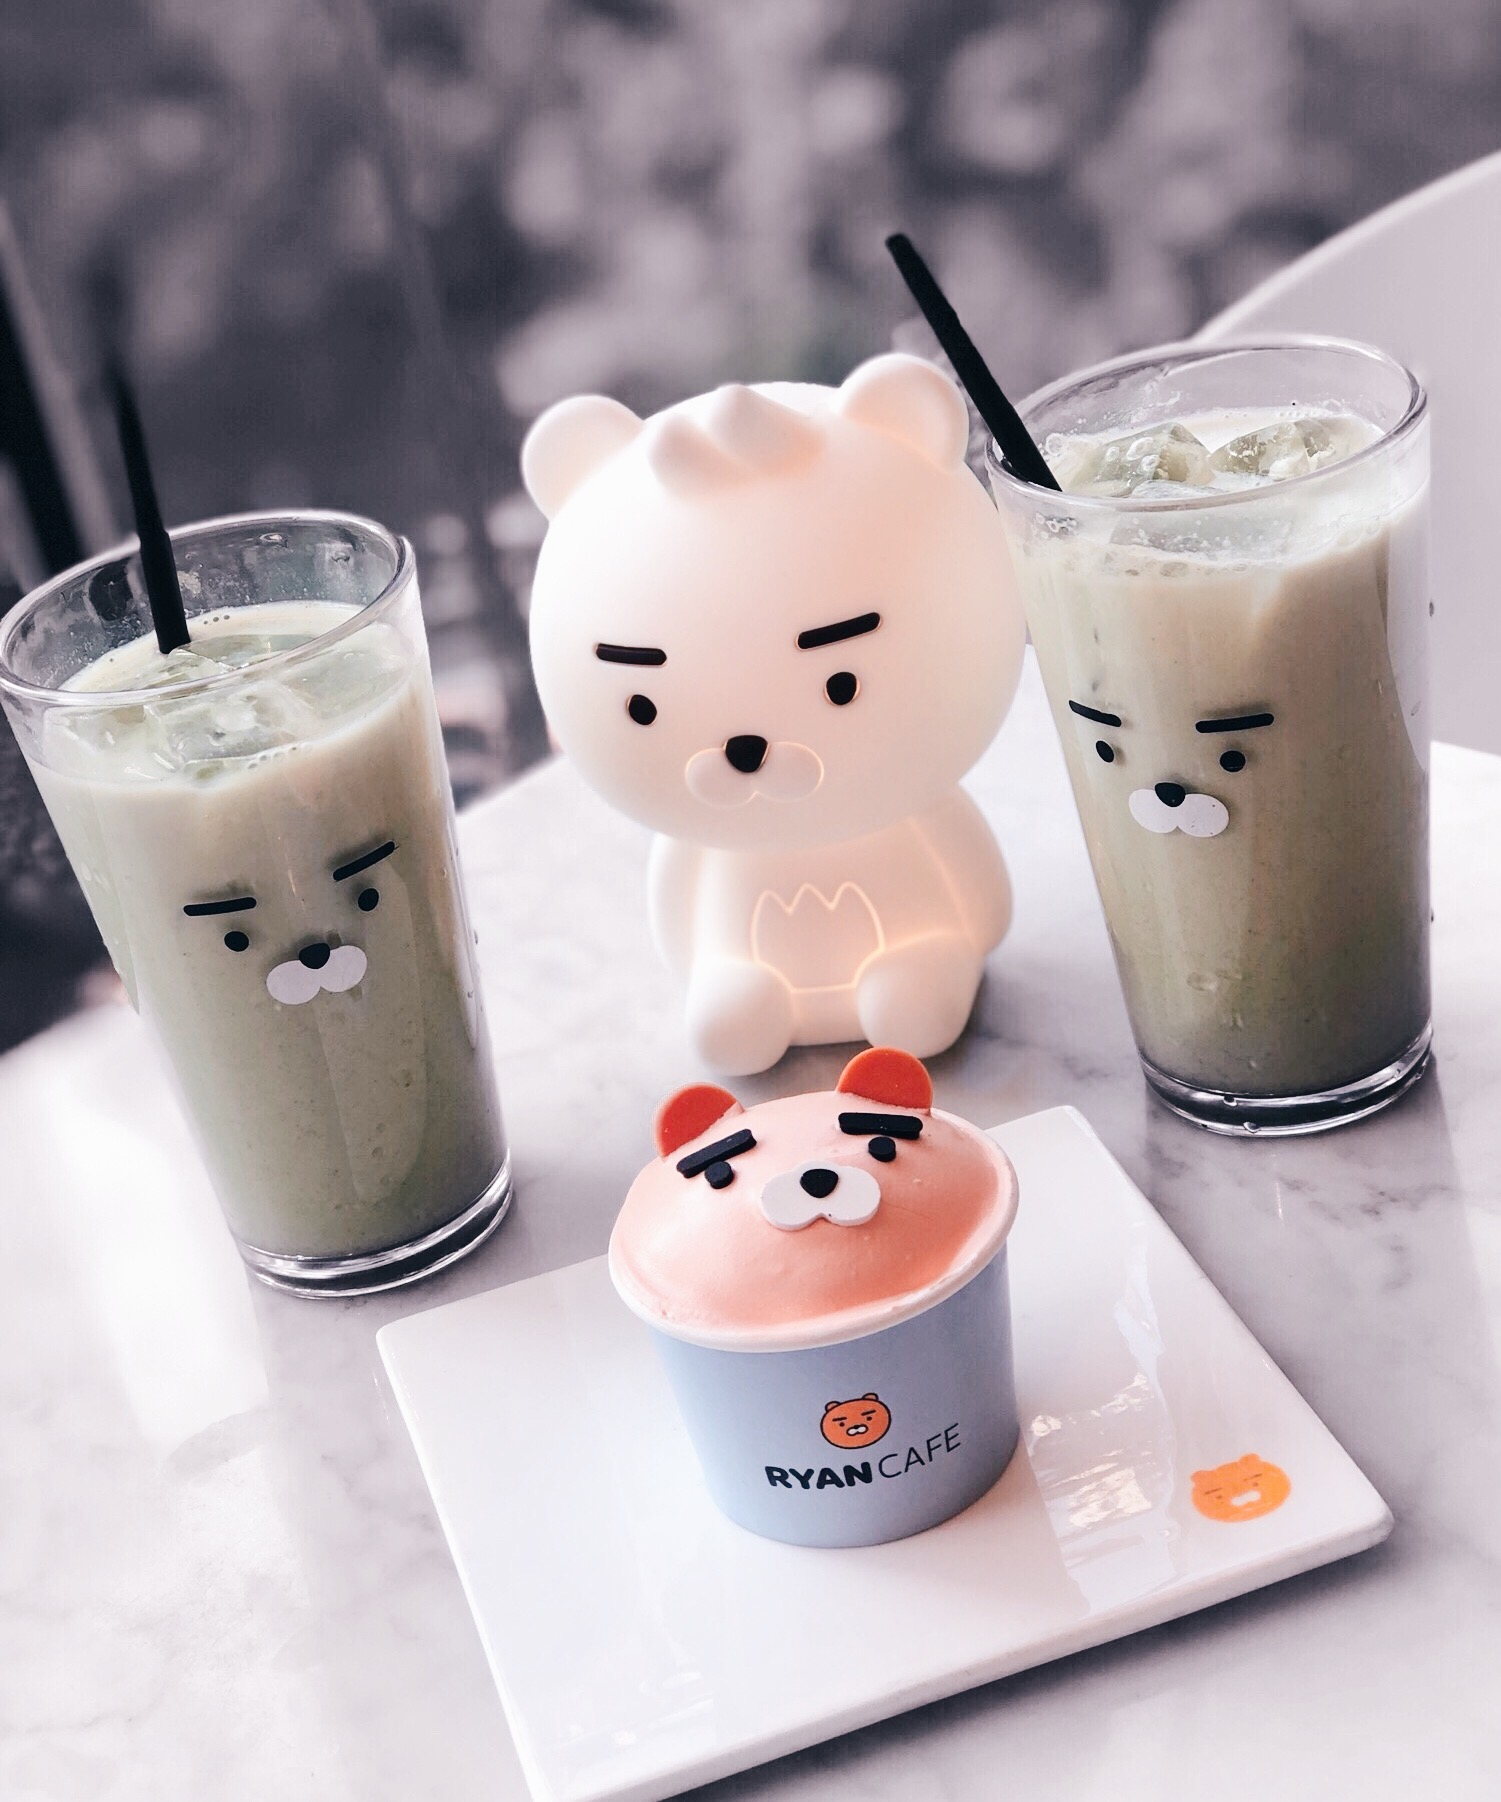 Aesthetic Cafes In Seoul Part 1 Out Of Mana